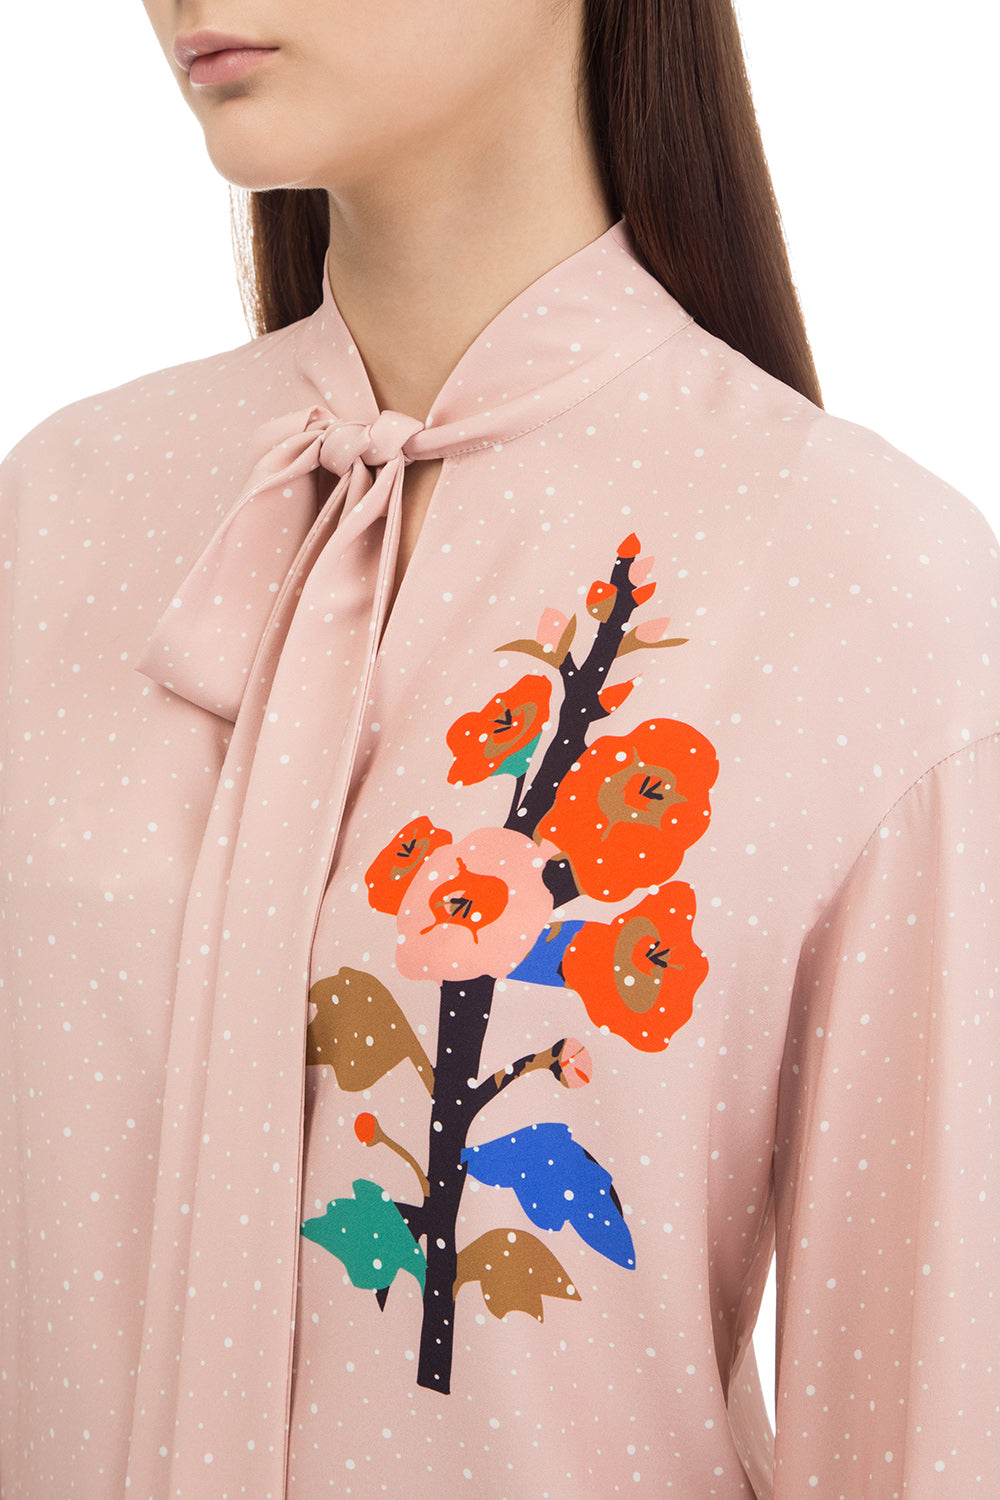 Peach printed blouse